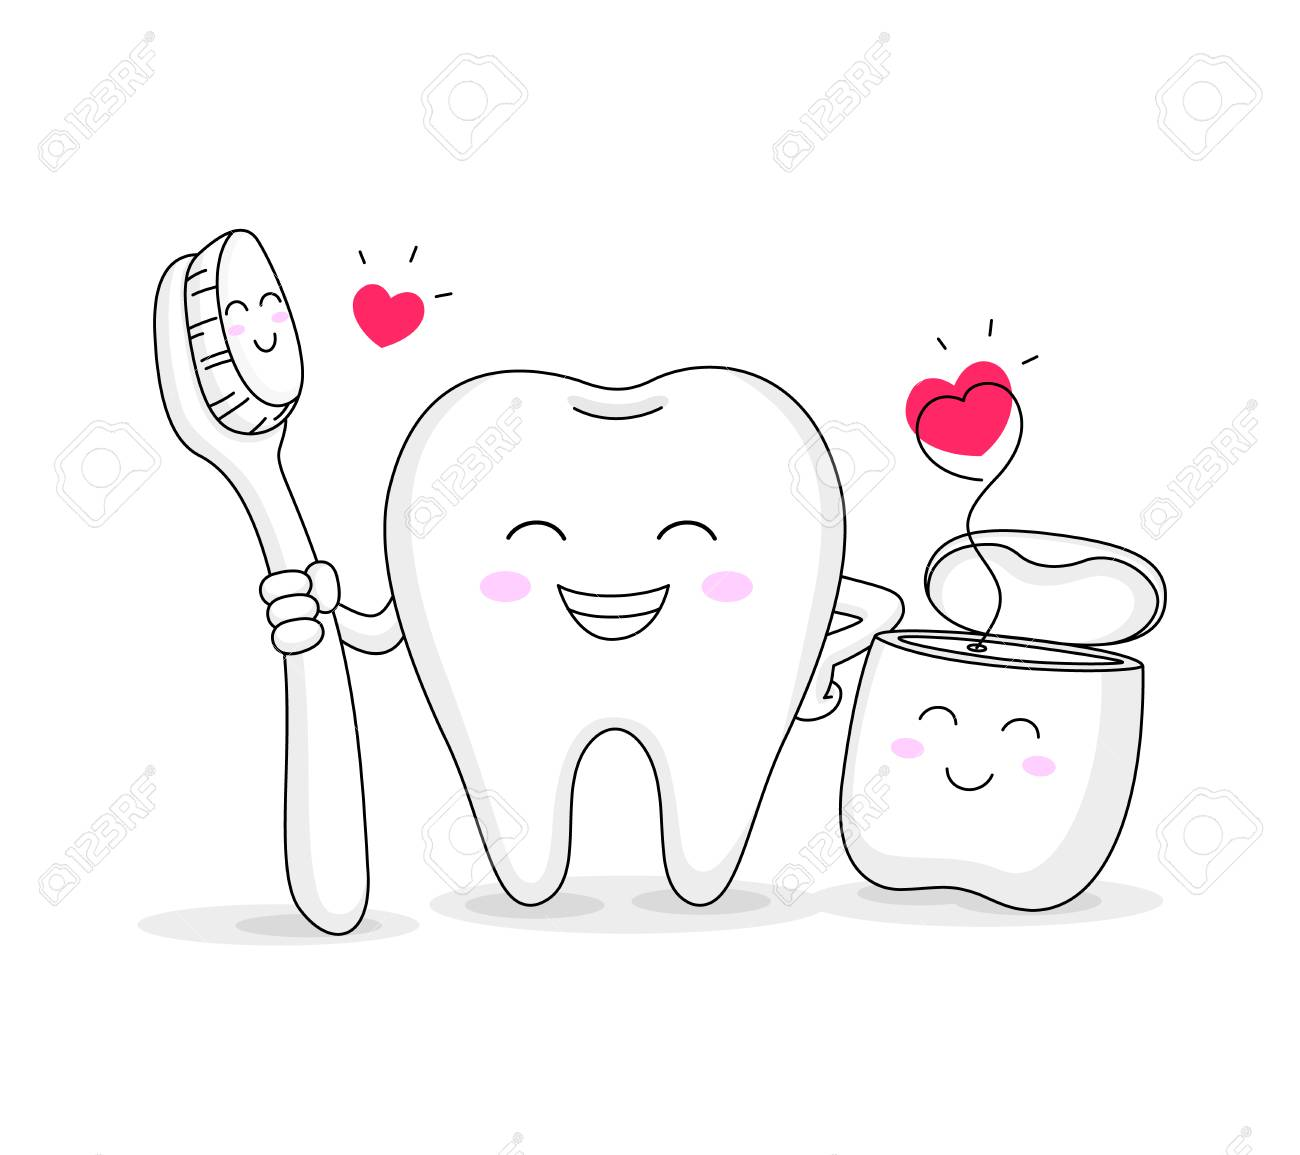 Cute Cartoon Tooth Character With Toothbrush And Dental Floss Royalty Free Cliparts Vectors And Stock Illustration Image 110106067